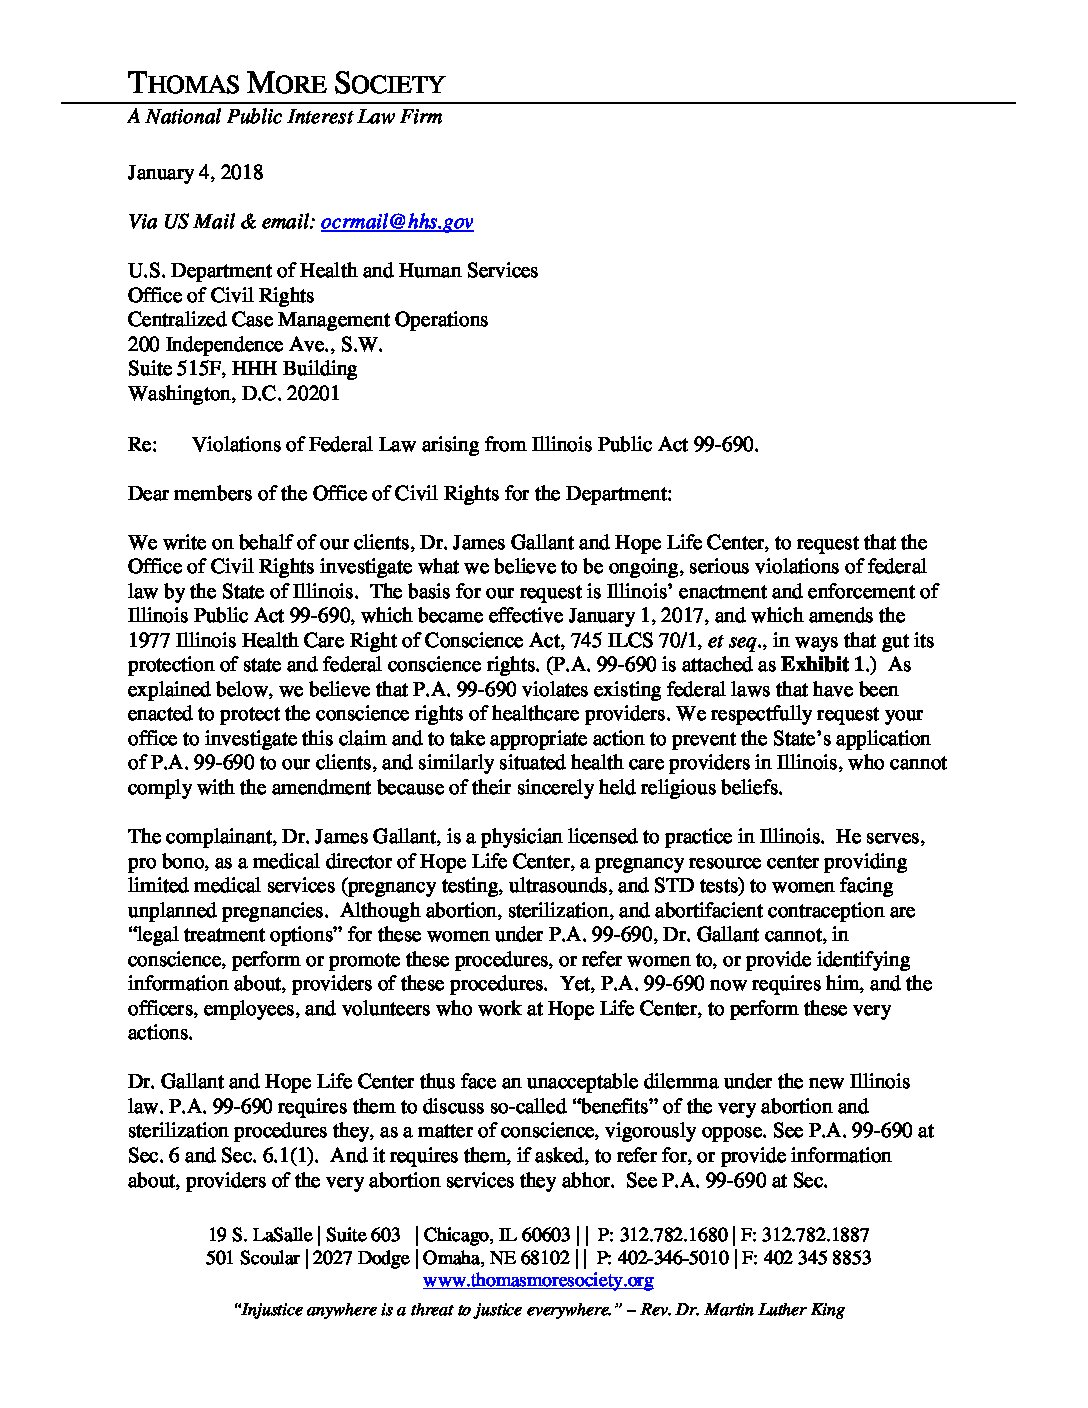 180104-Hhs-Ocr-Complaint-Letter-With-Exhibits-Pdf.jpg